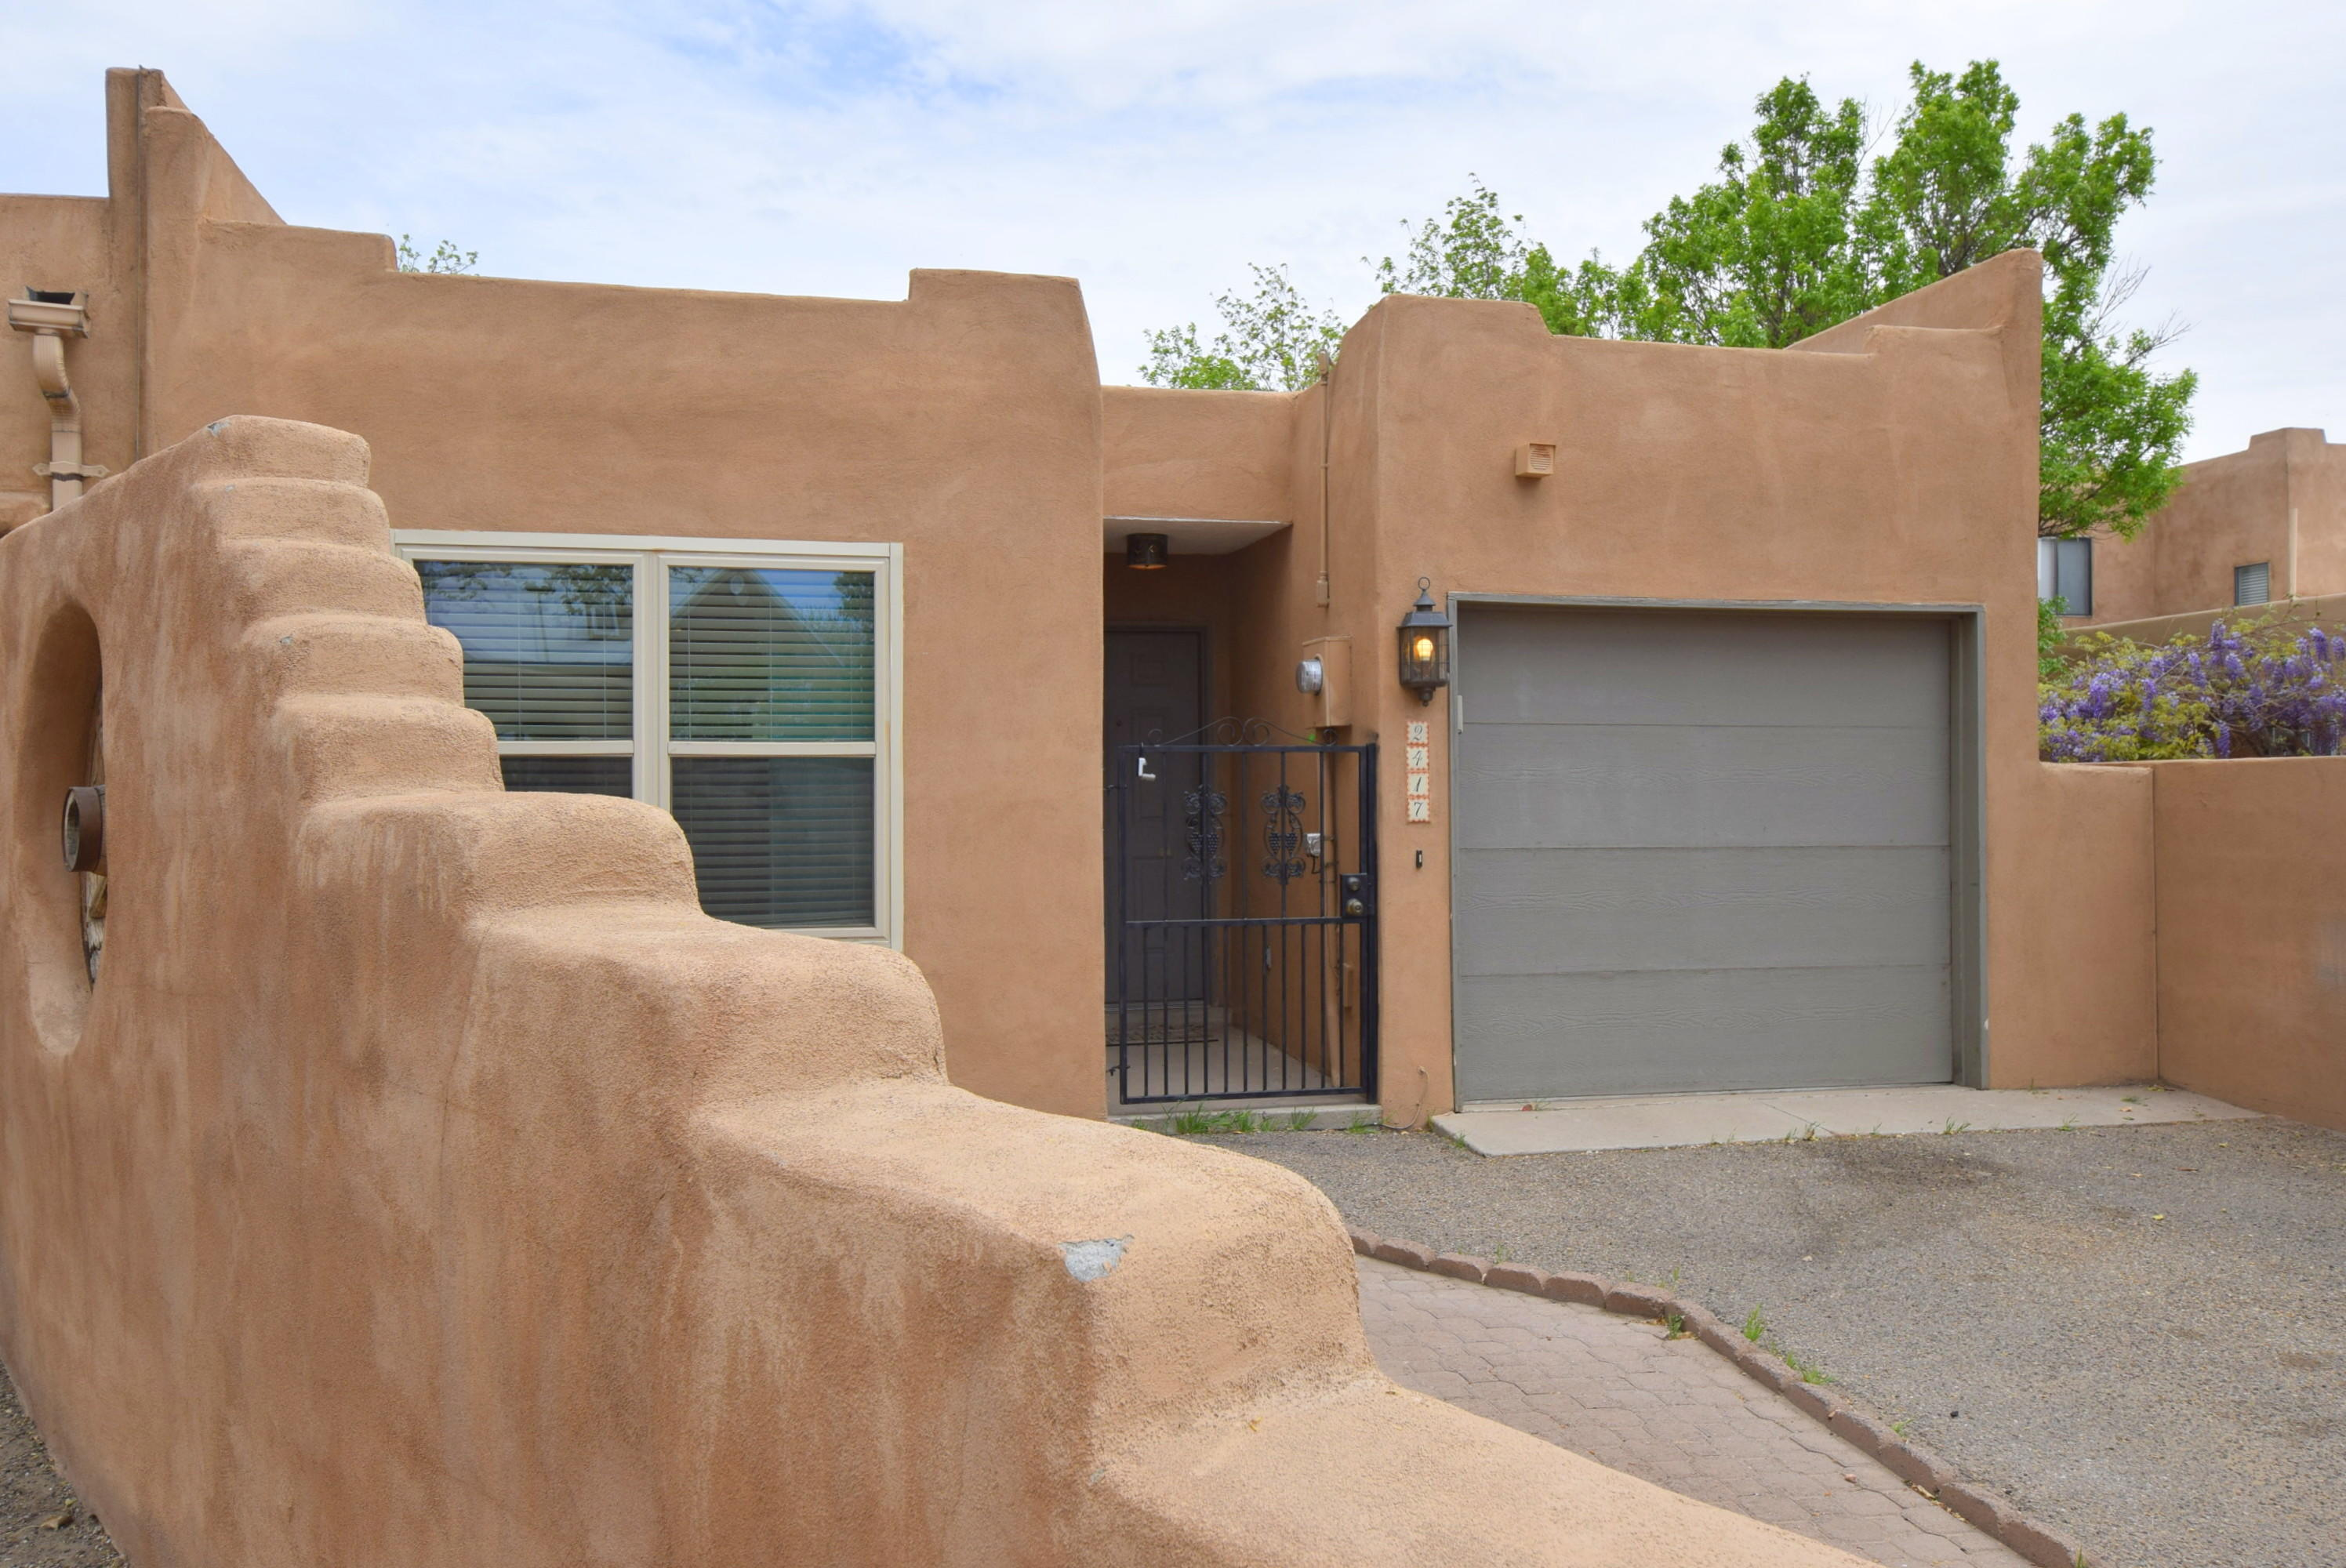 Fully renovated.  Saltillo tile throughout.  Kitchen with granite and stainless steel appliances.  GREAT location.  Super close to Old Town.  Unique copper lighting throughout.  Perfect Southwestern flair.  Private patio.  One car garage with additional parking.